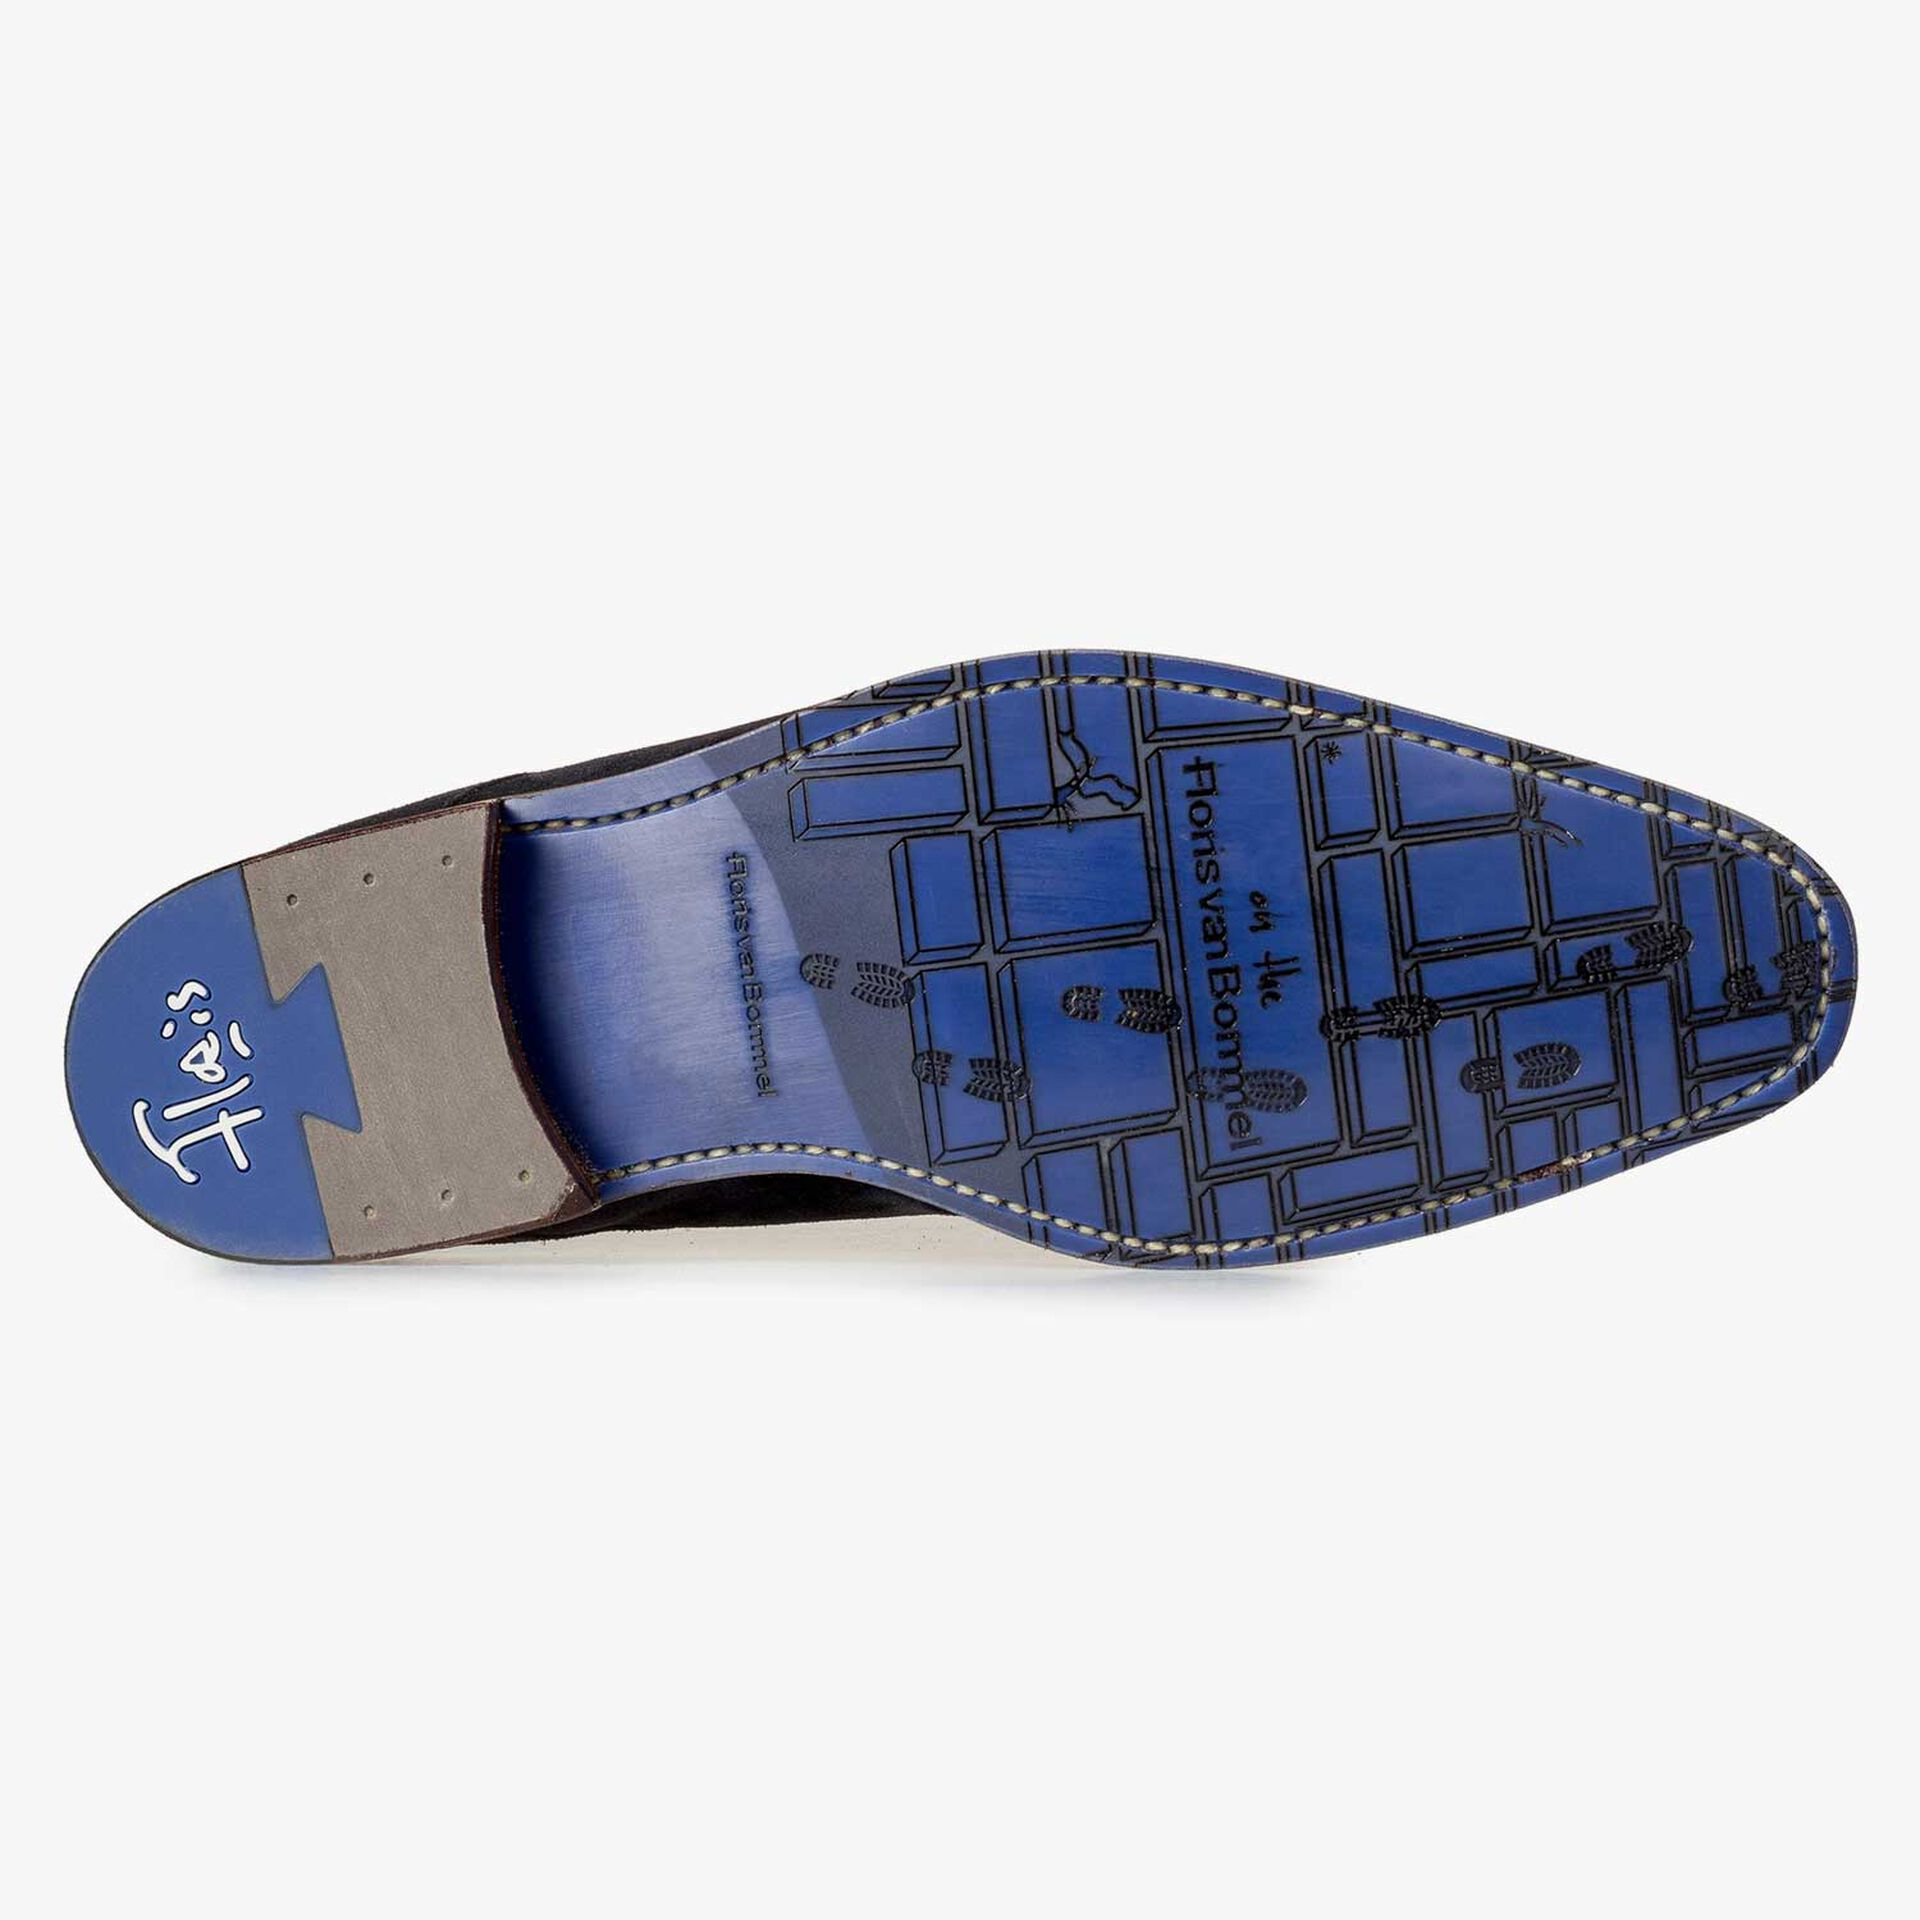 Dark blue printed suede leather lace shoe